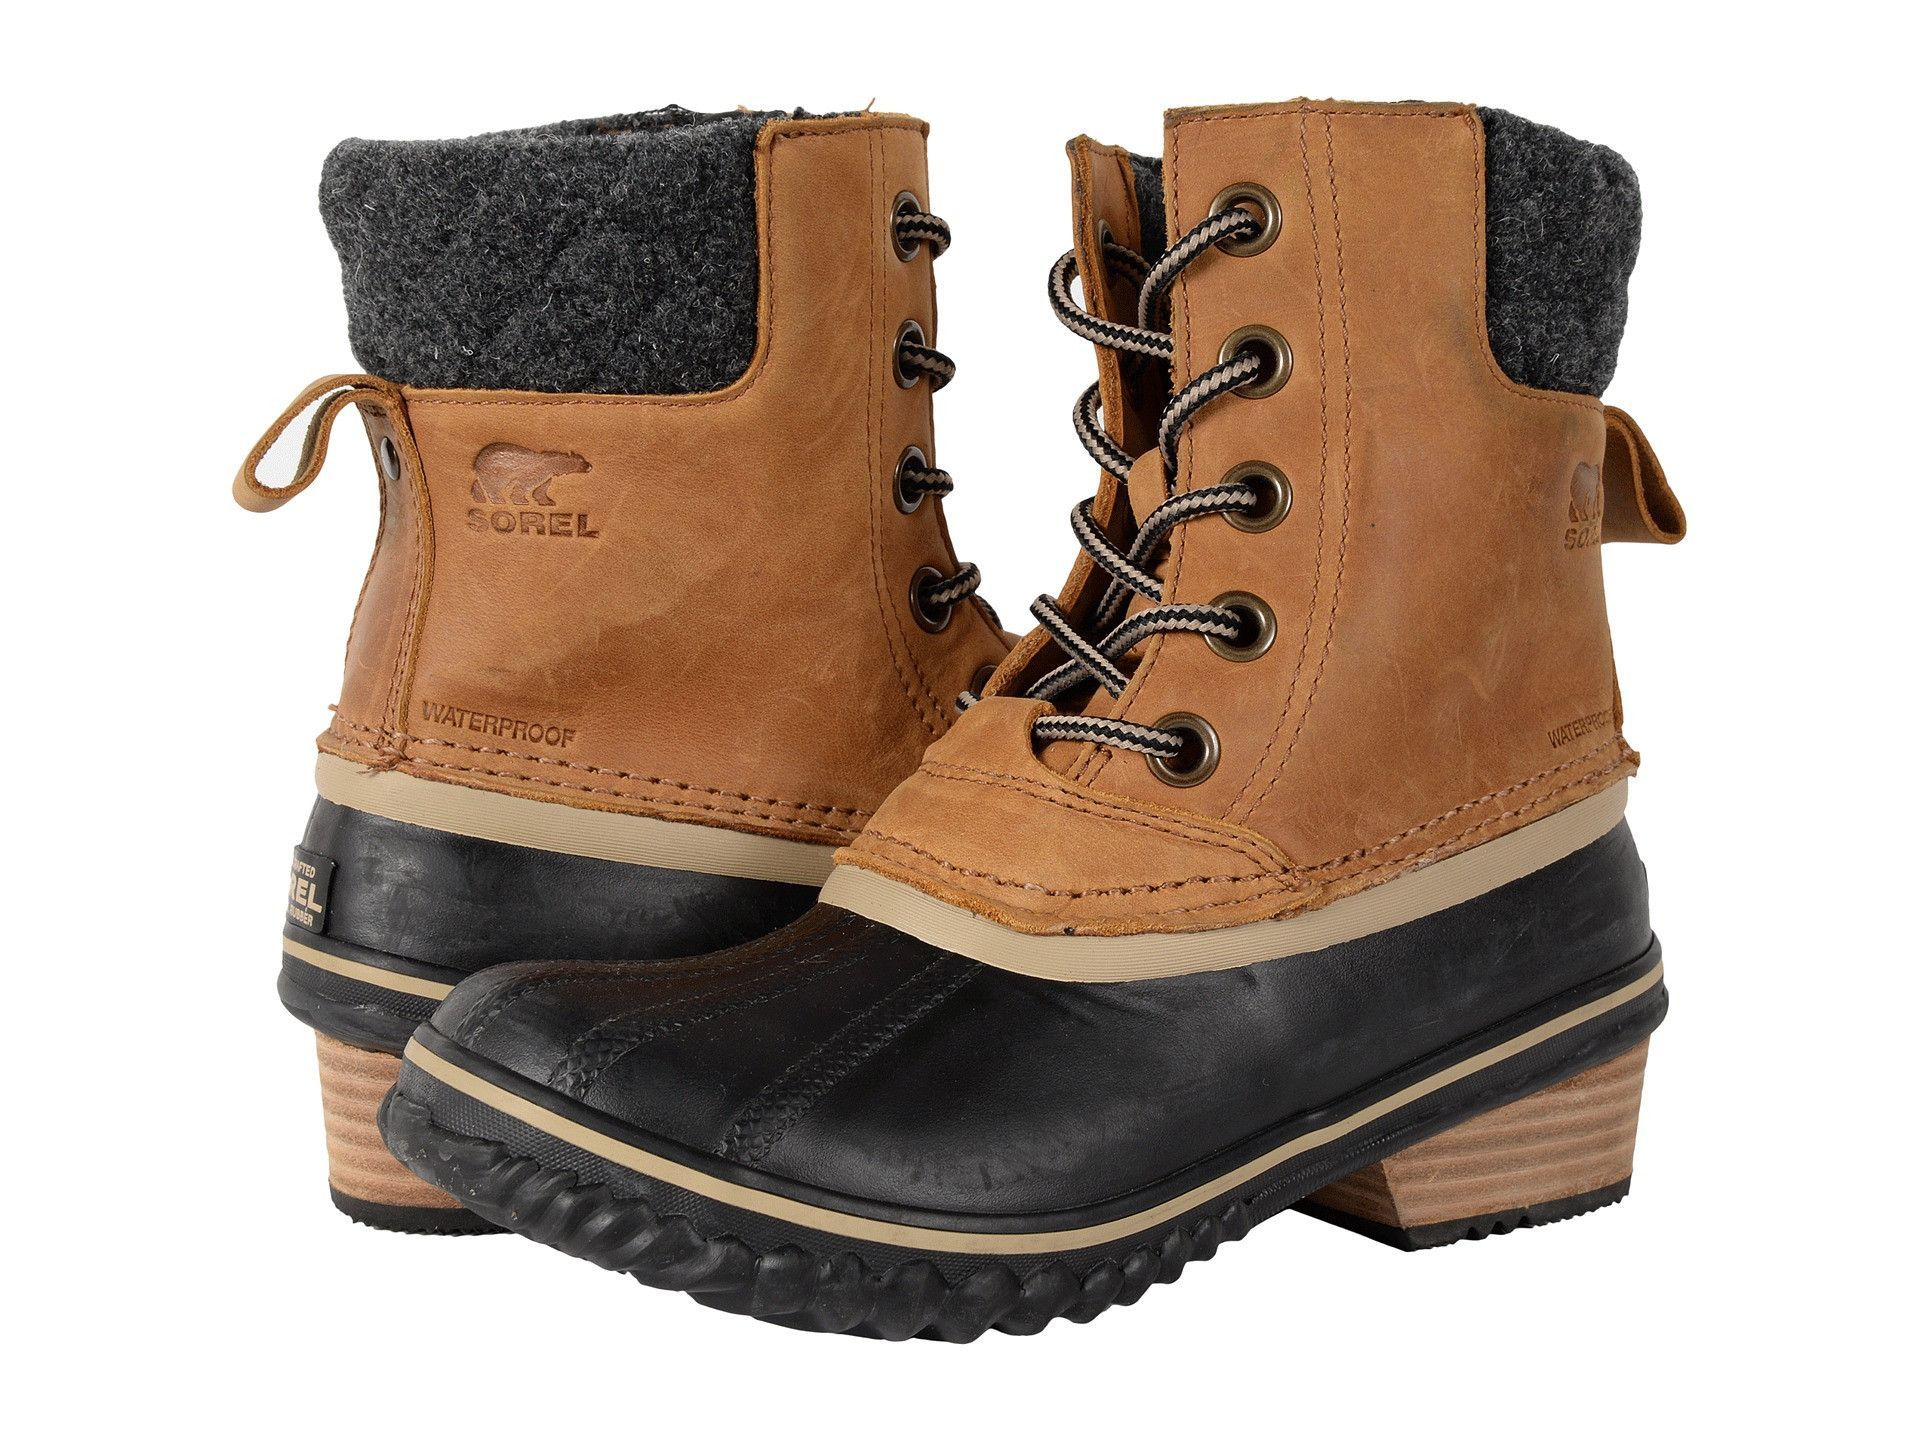 Clearance From China sorel SLIMPACK II LACE women's Mid Boots in Release Dates Cheap Price Cheapest Buy Cheap Buy View Online gHMc04